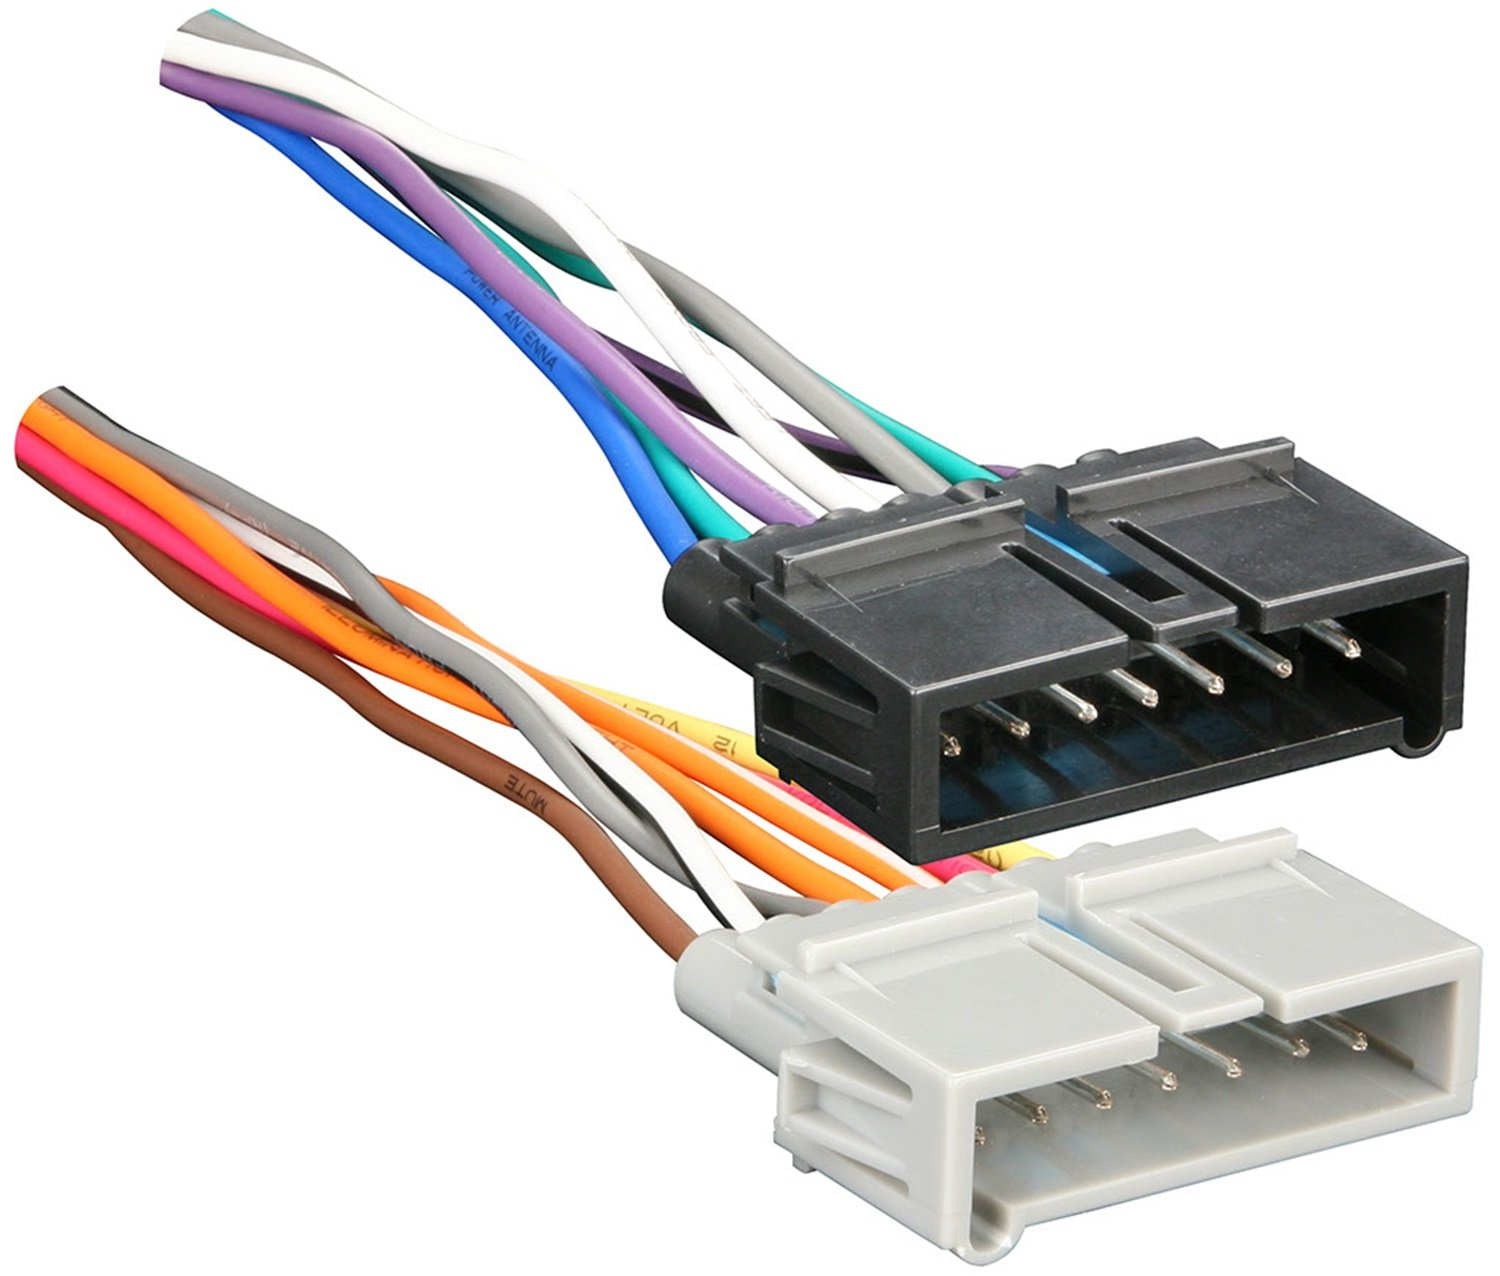 71QUZlC QWL._SL1500_ amazon com metra 70 1817 radio wiring harness for chrysler jeep sony wiring harness at gsmportal.co